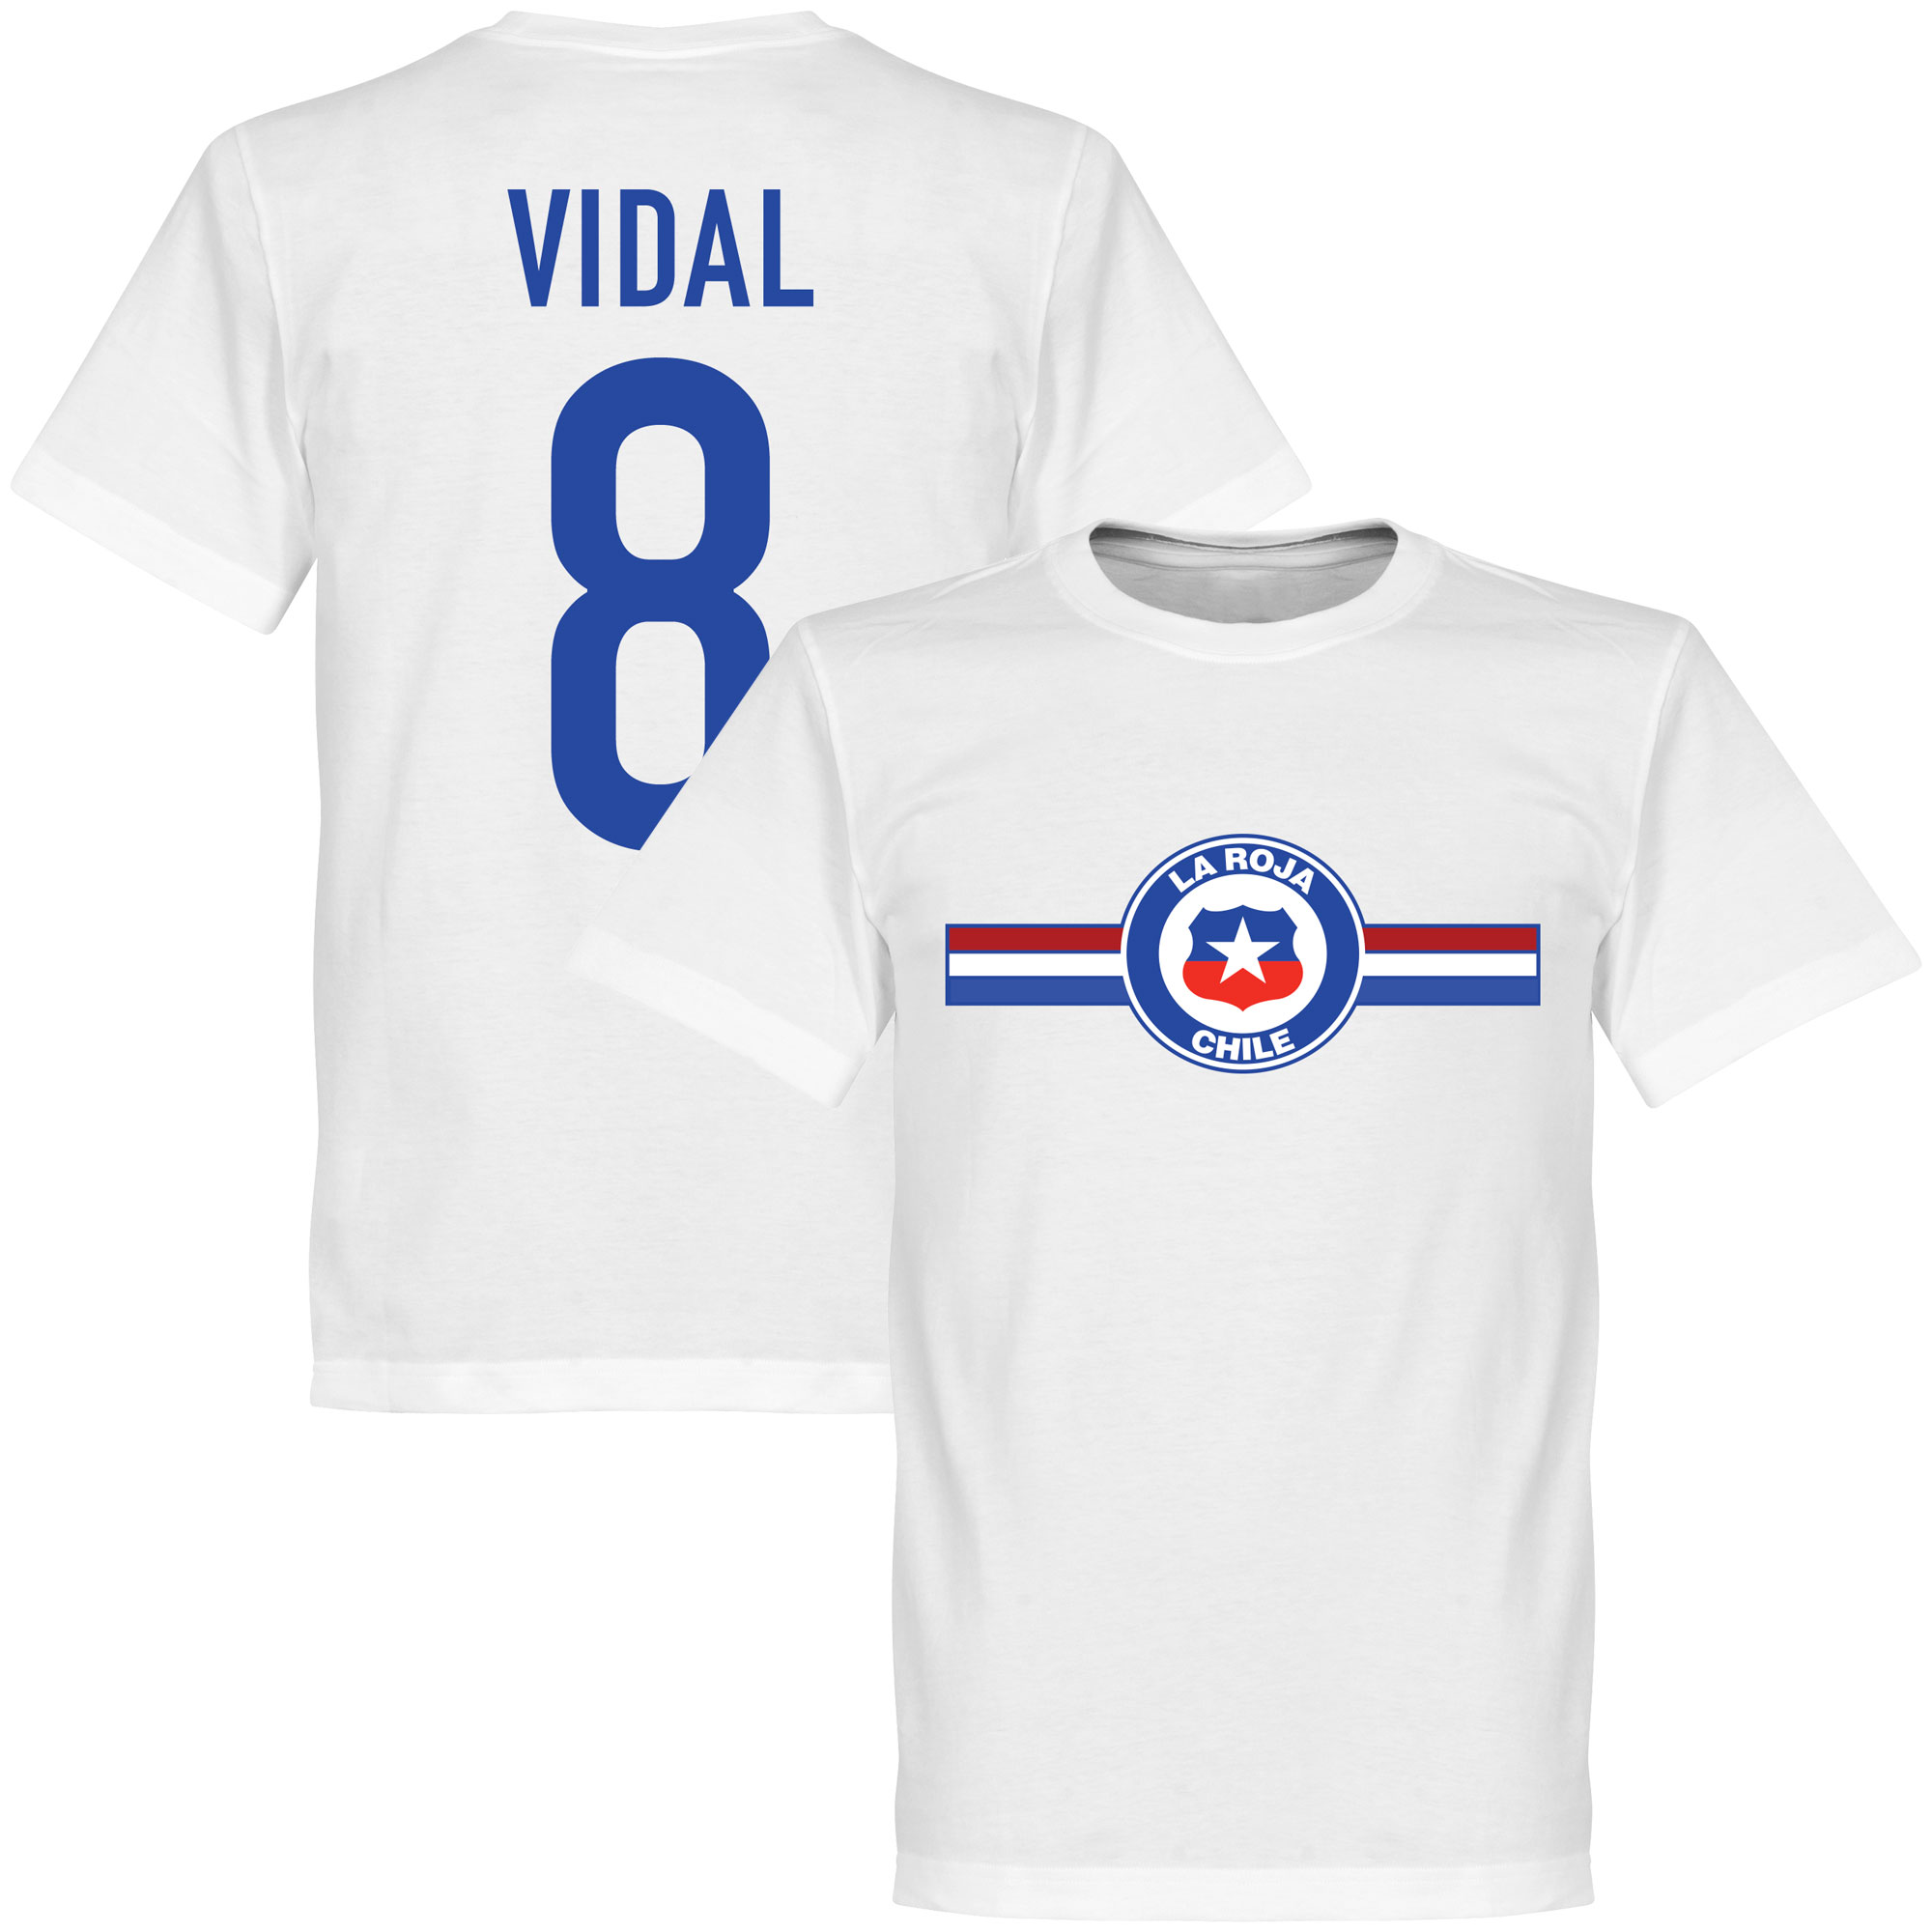 Chile Vidal Tee - White - XXL